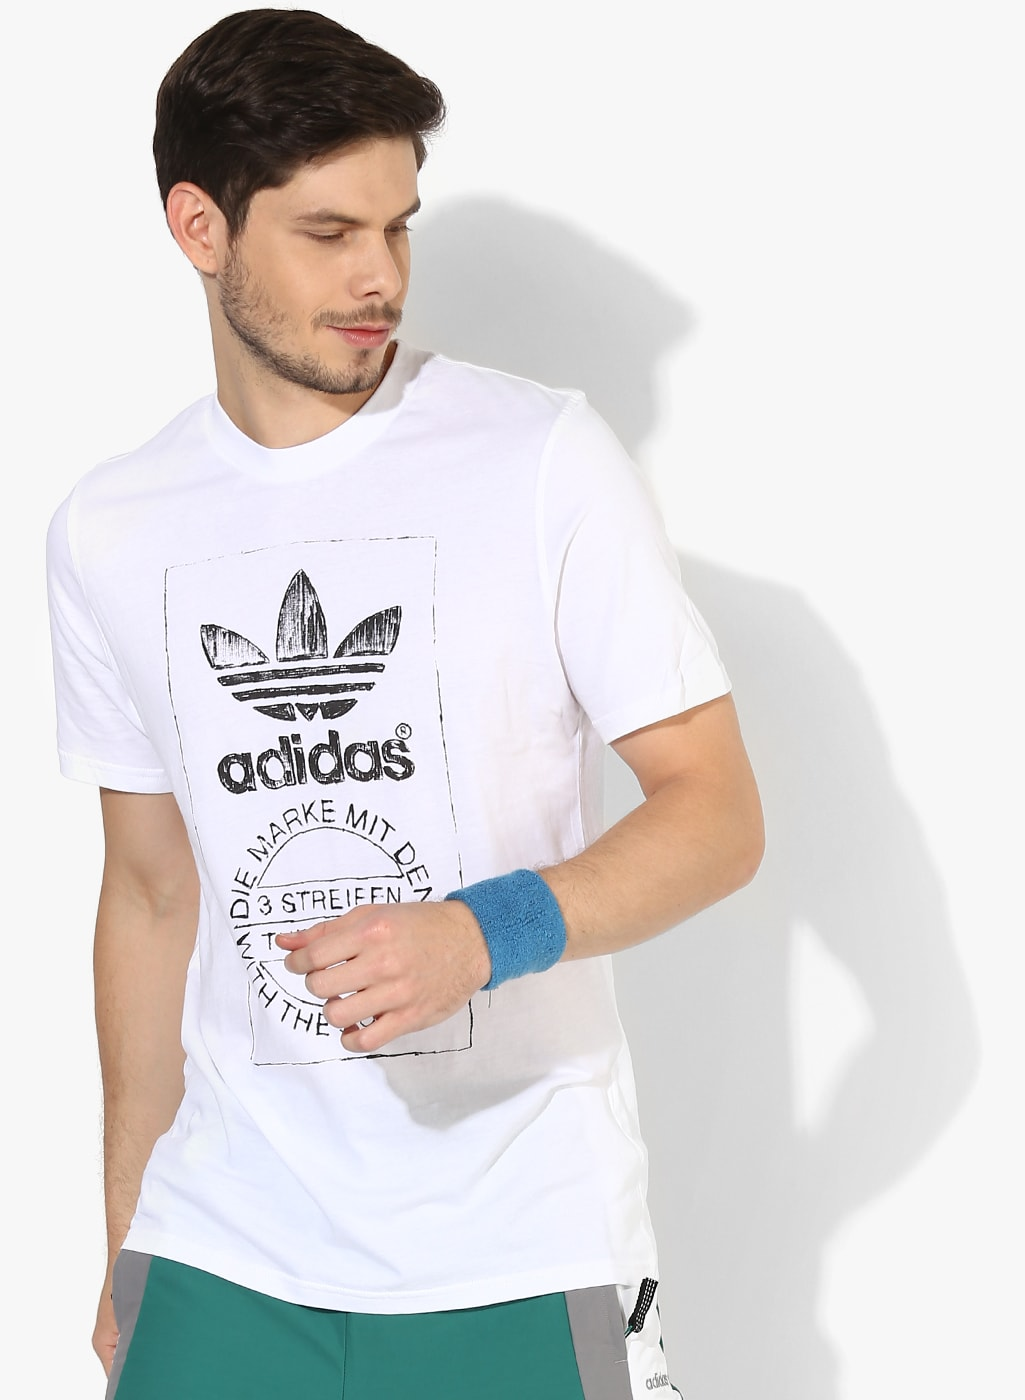 the latest 70ab2 a35a7 Adidas Originals Tshirts Wristbands Jackets - Buy Adidas Originals Tshirts  Wristbands Jackets online in India